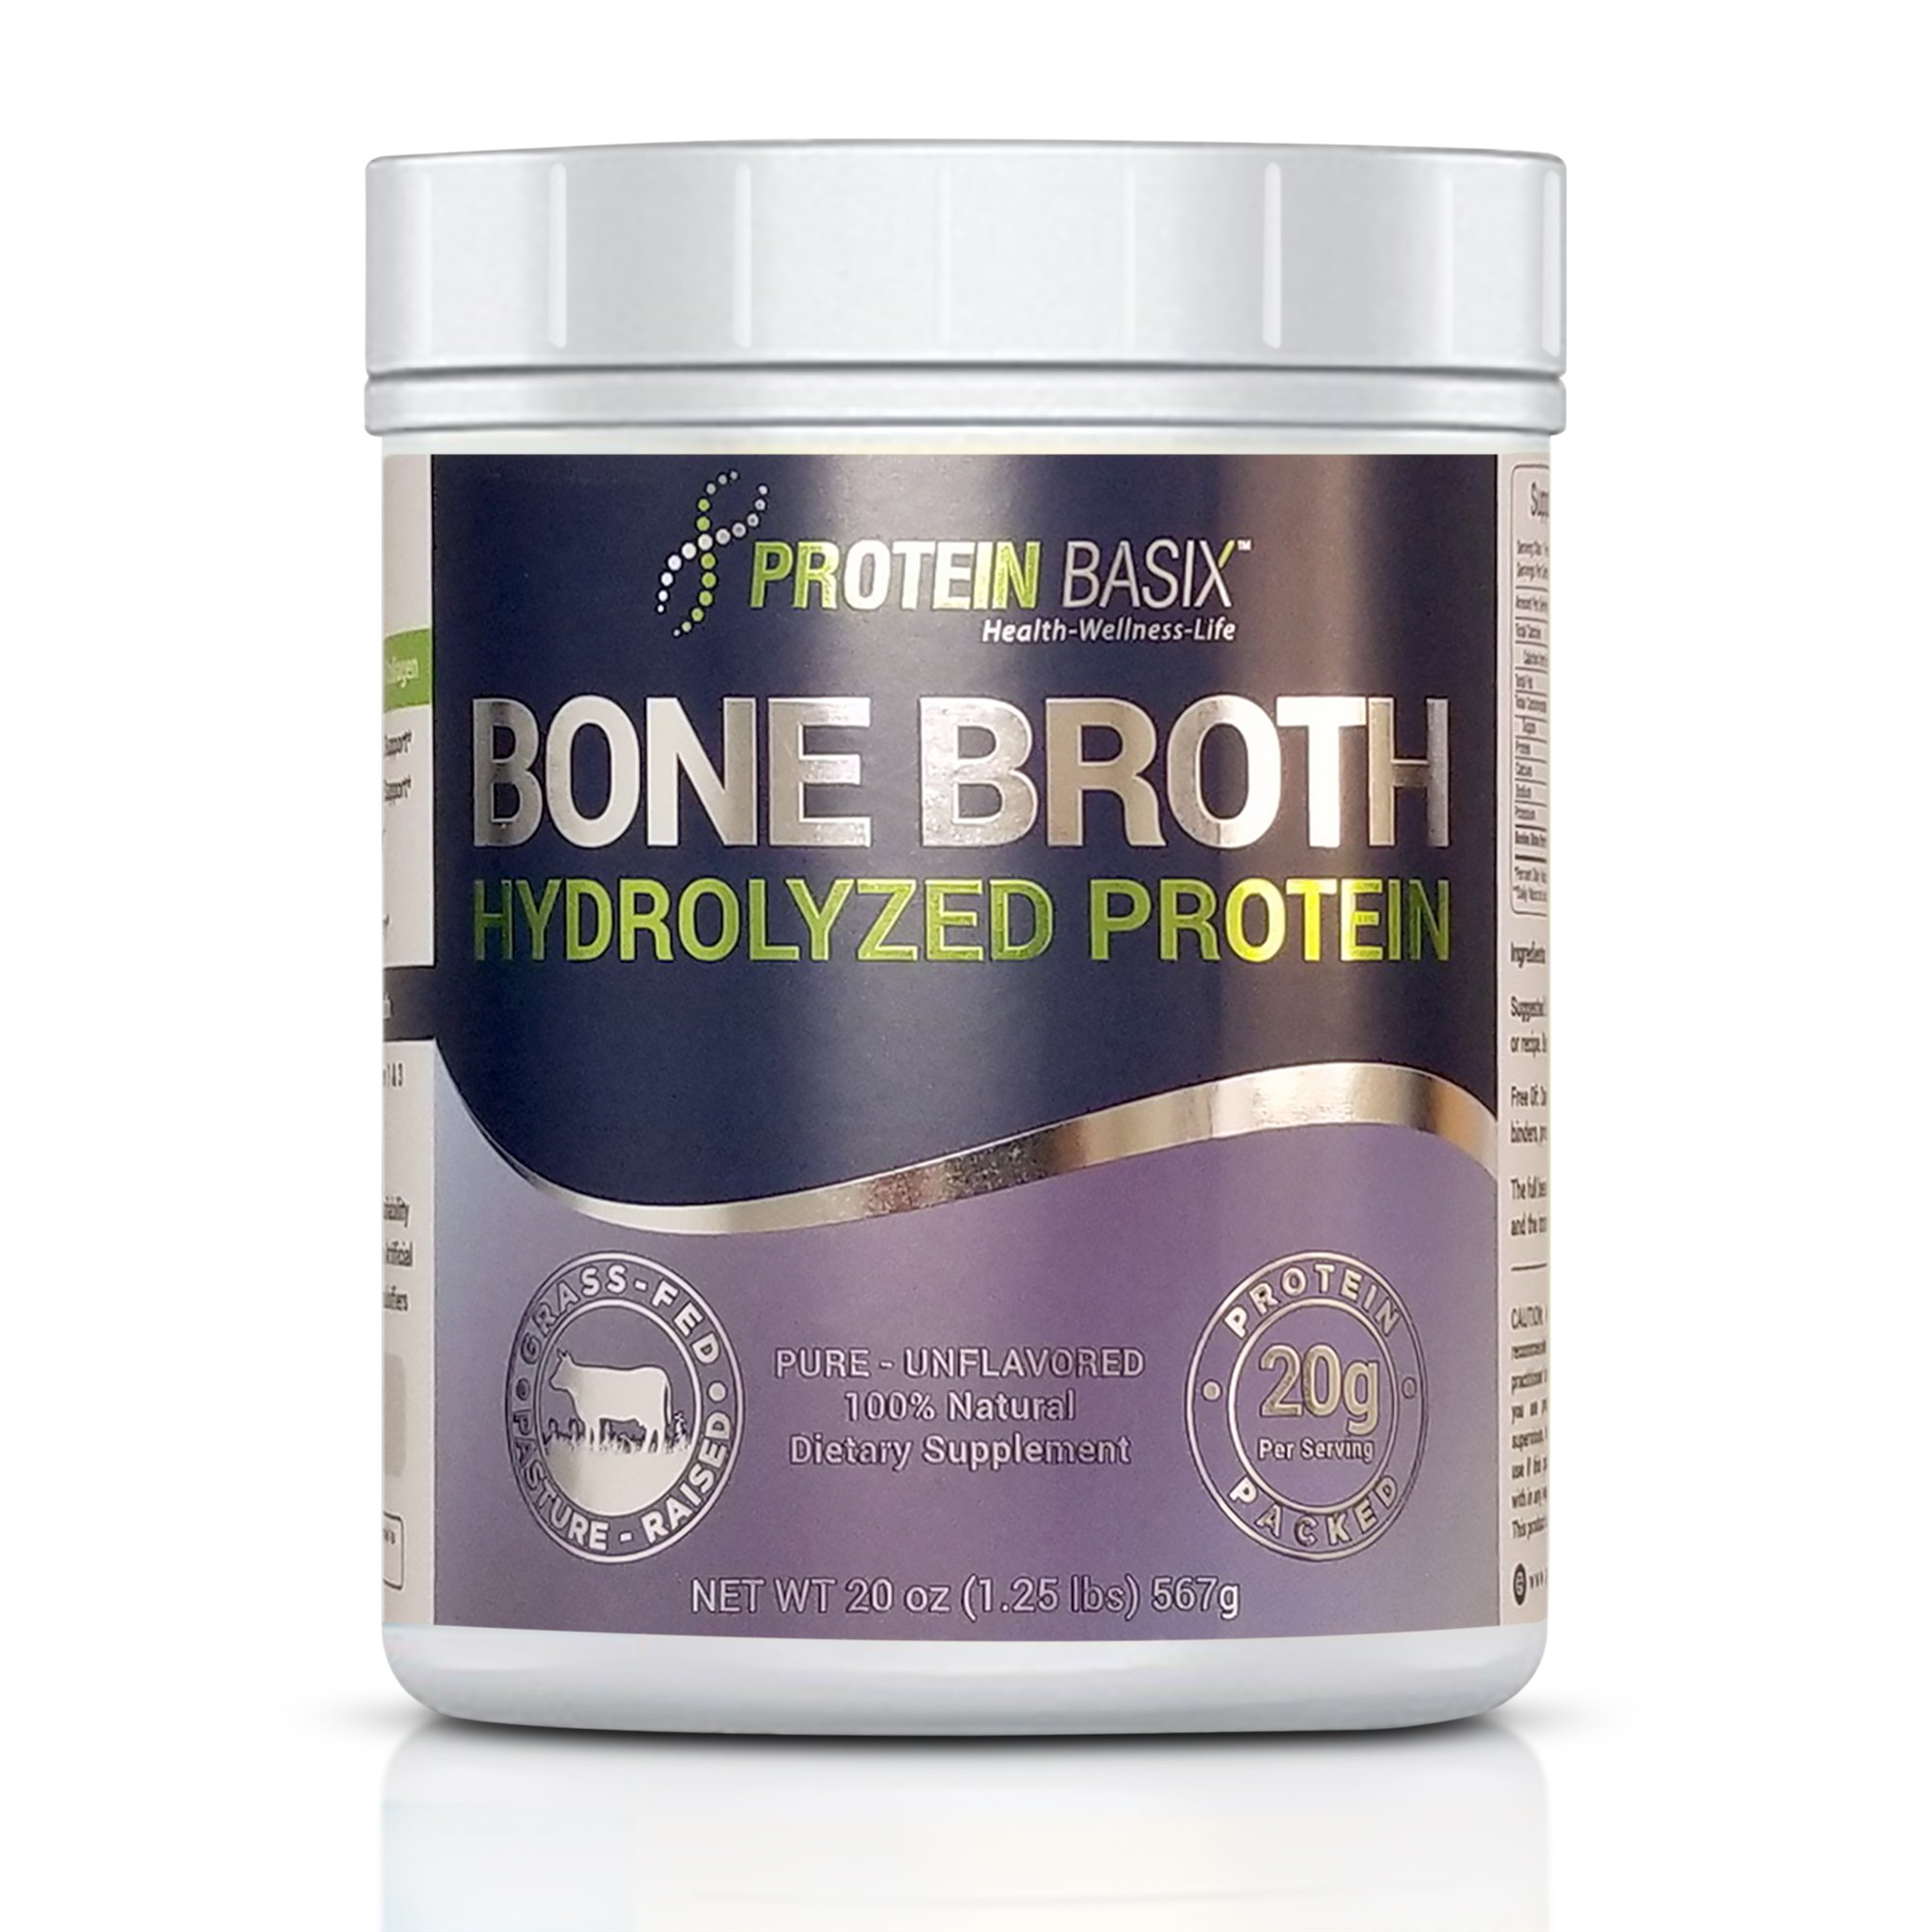 Bone Broth Protein Powder, Packed with 22.25g of Pure Premium Collagen Peptides Per Serving, 20oz. Grass Fed, Pasture Raised, Paleo & Keto Friendly- No additives or Flavorings, 20oz. by Protein Basix